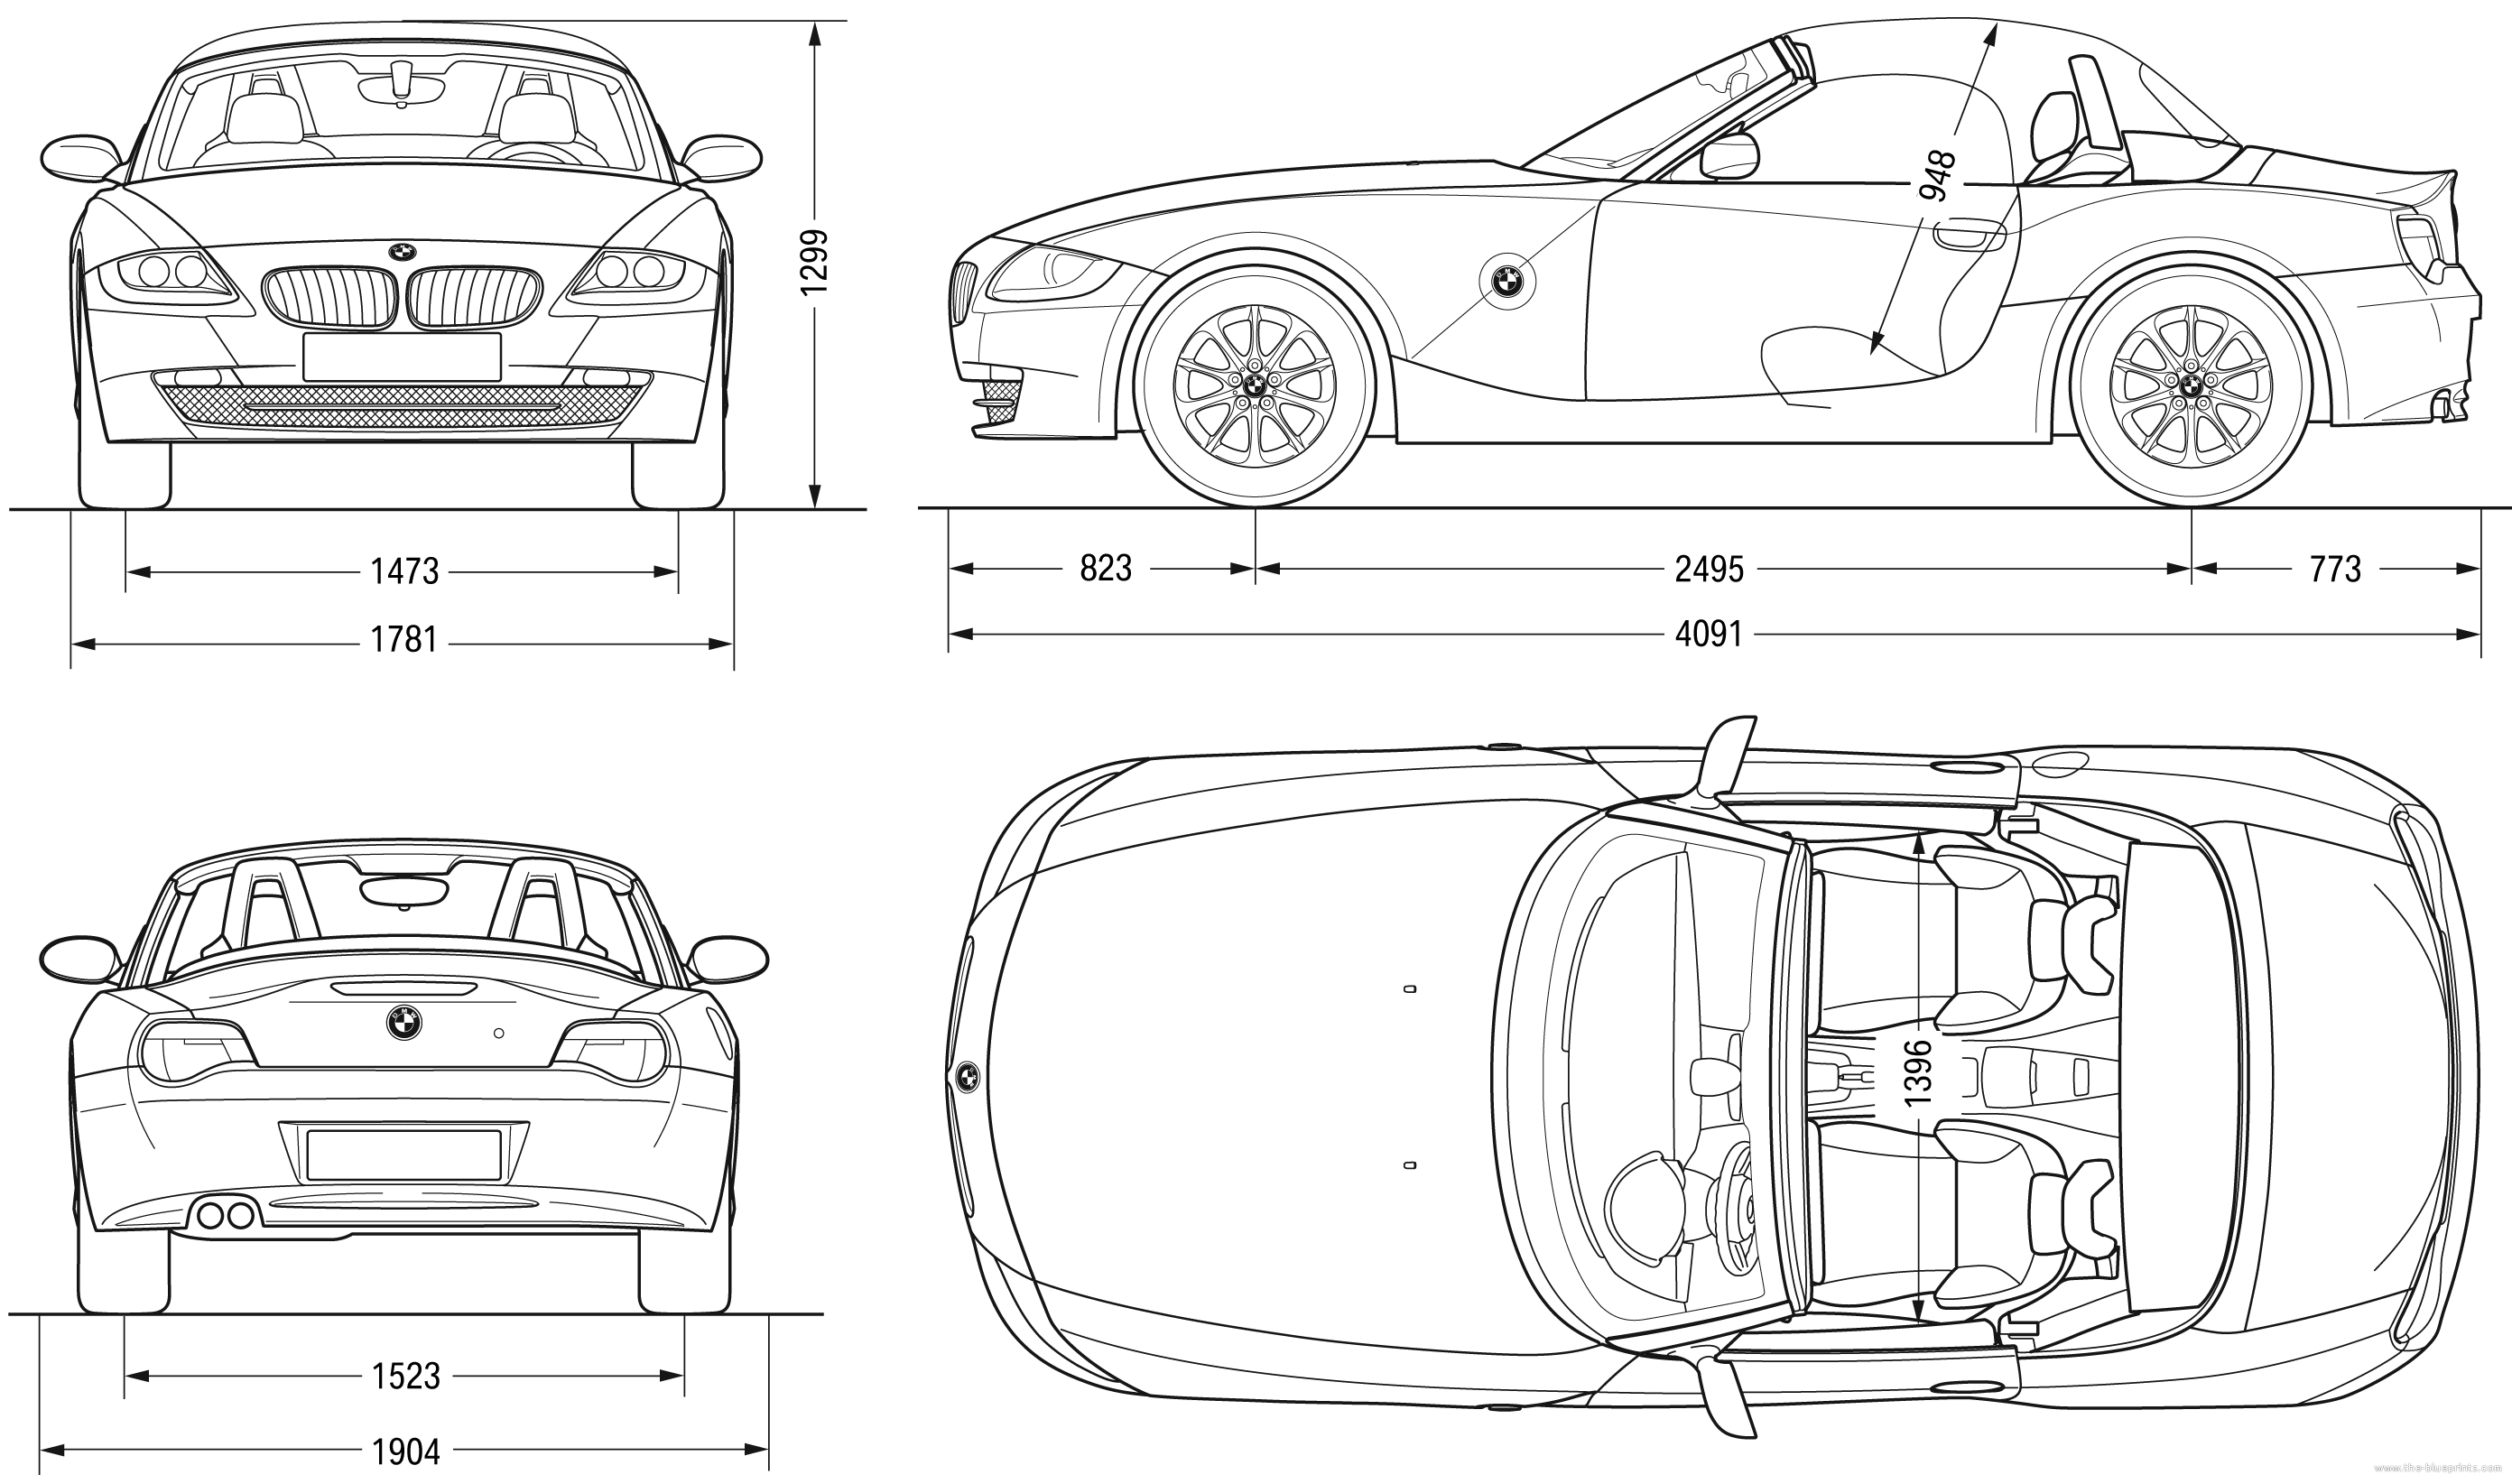 Bmw z4 blueprints pinterest bmw z4 bmw and cars bmw z4 malvernweather